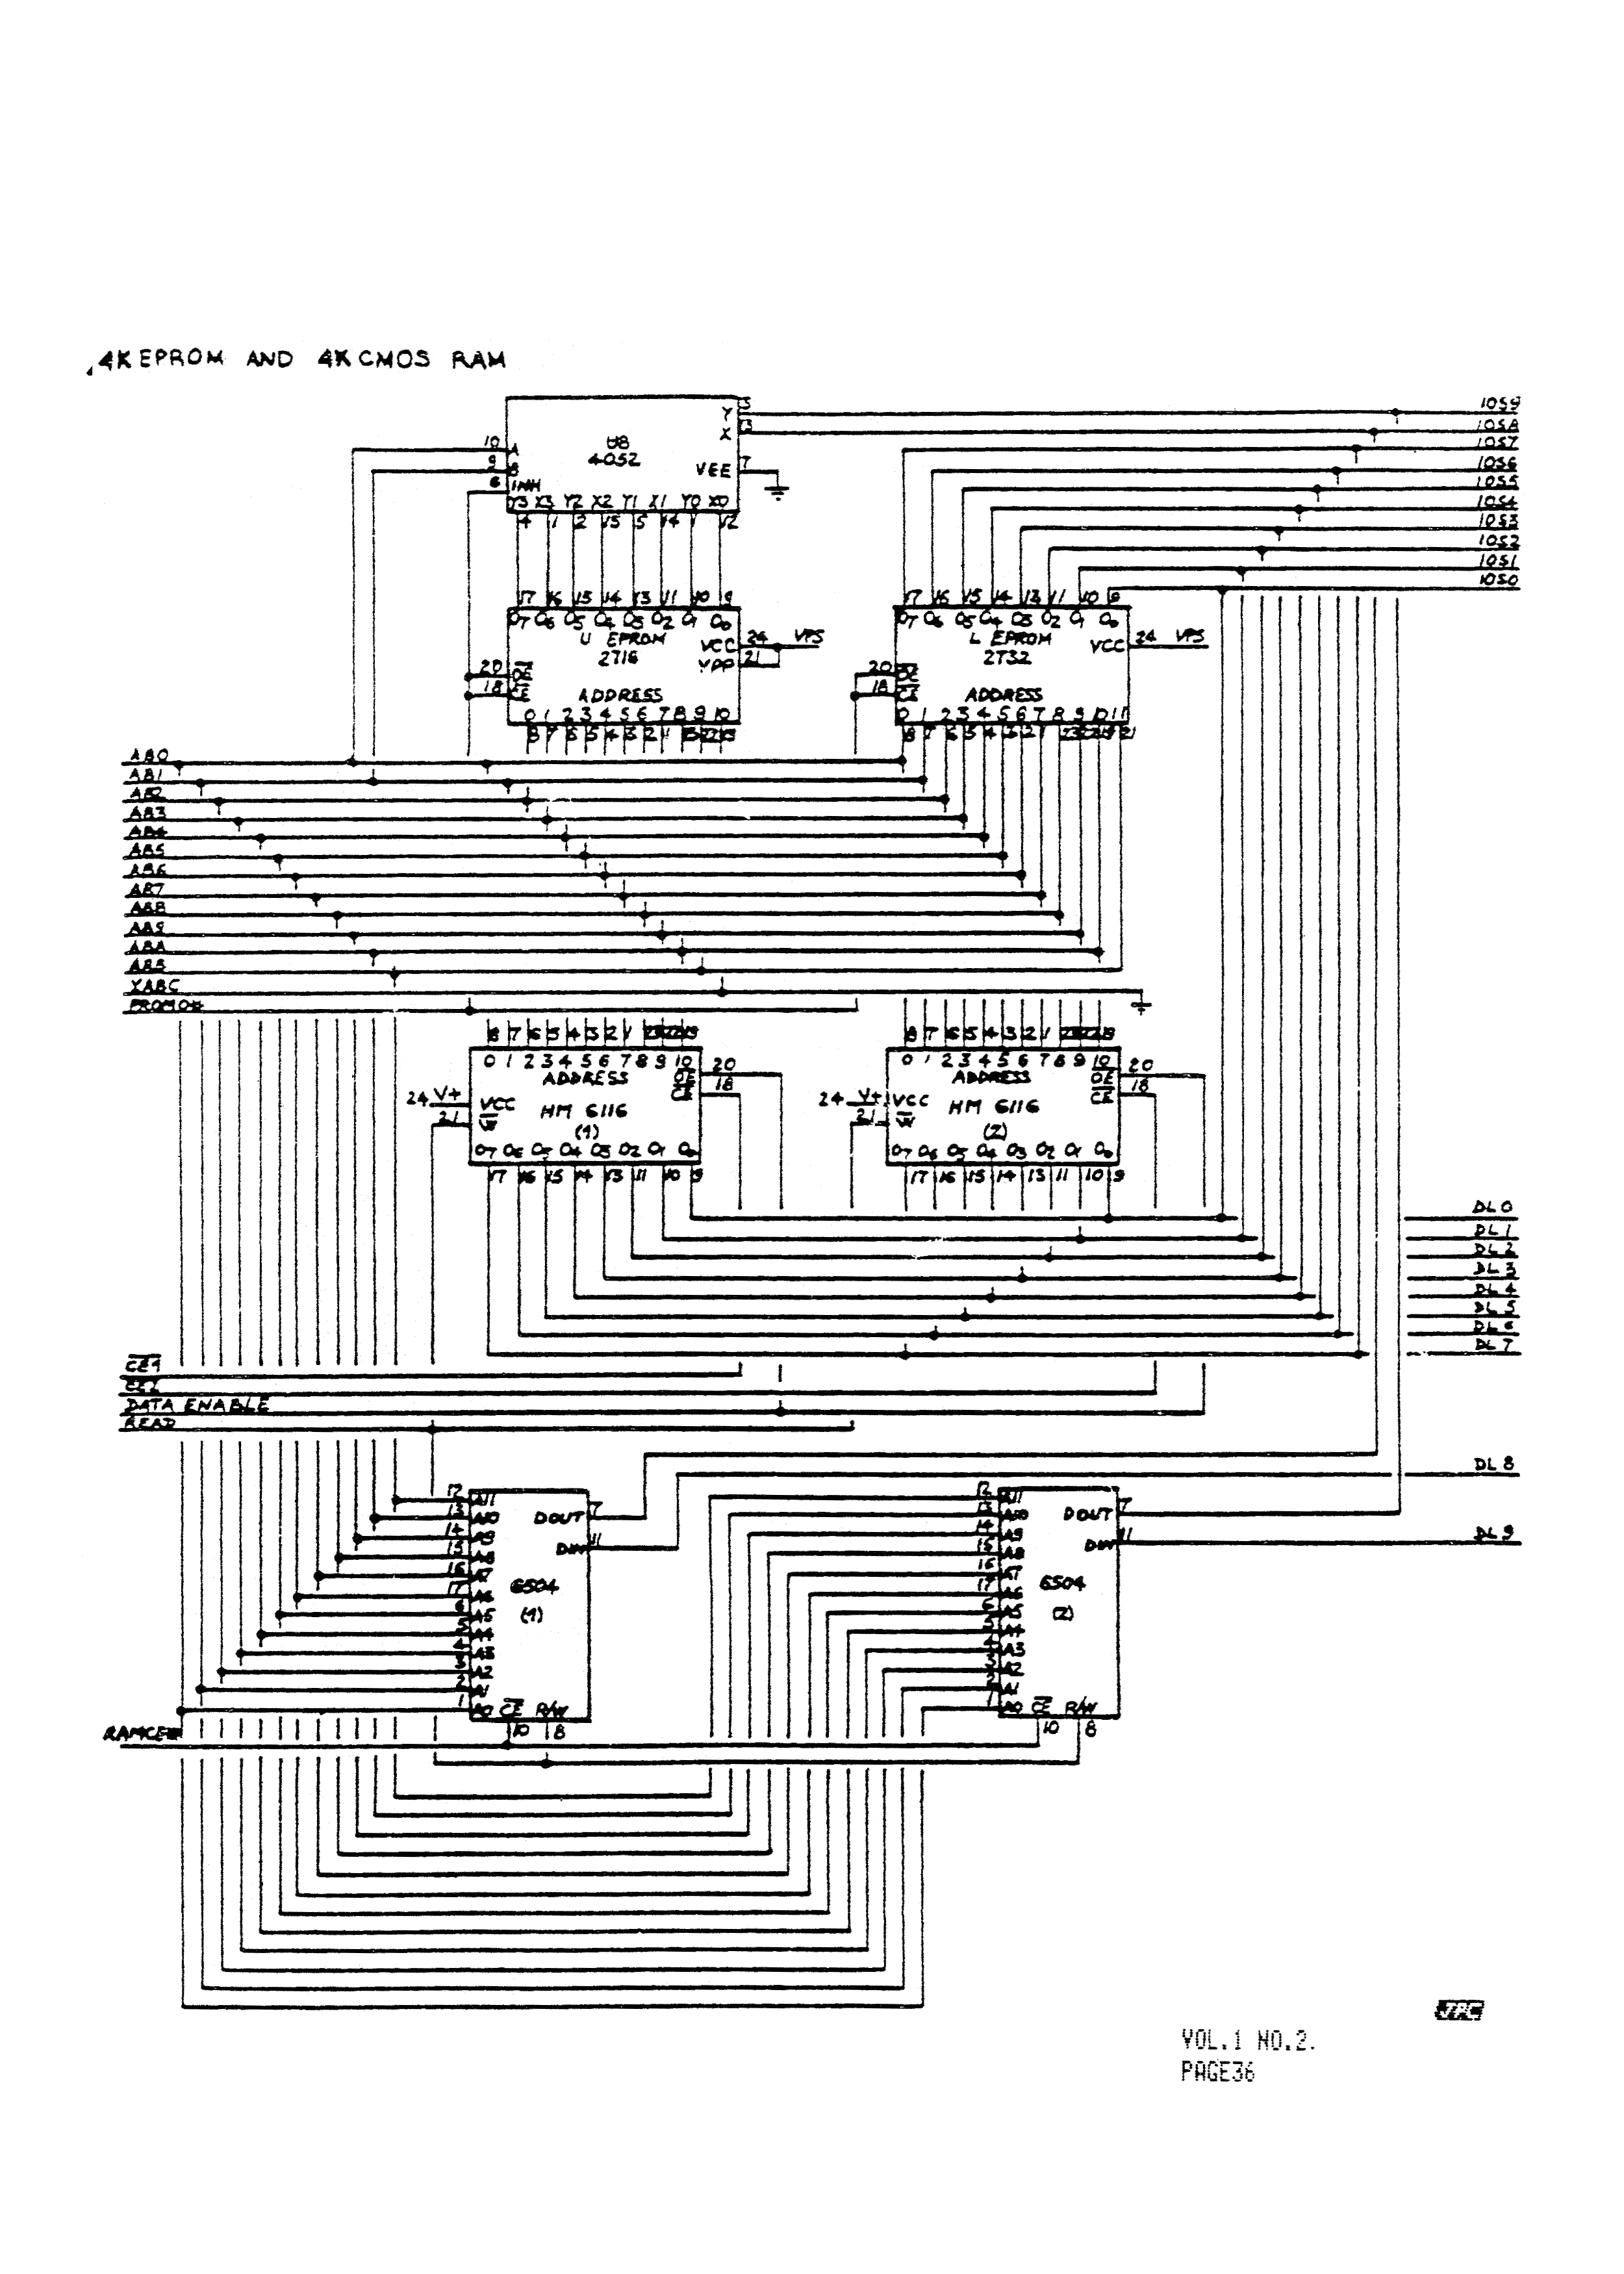 Jp-2-page-36-1000